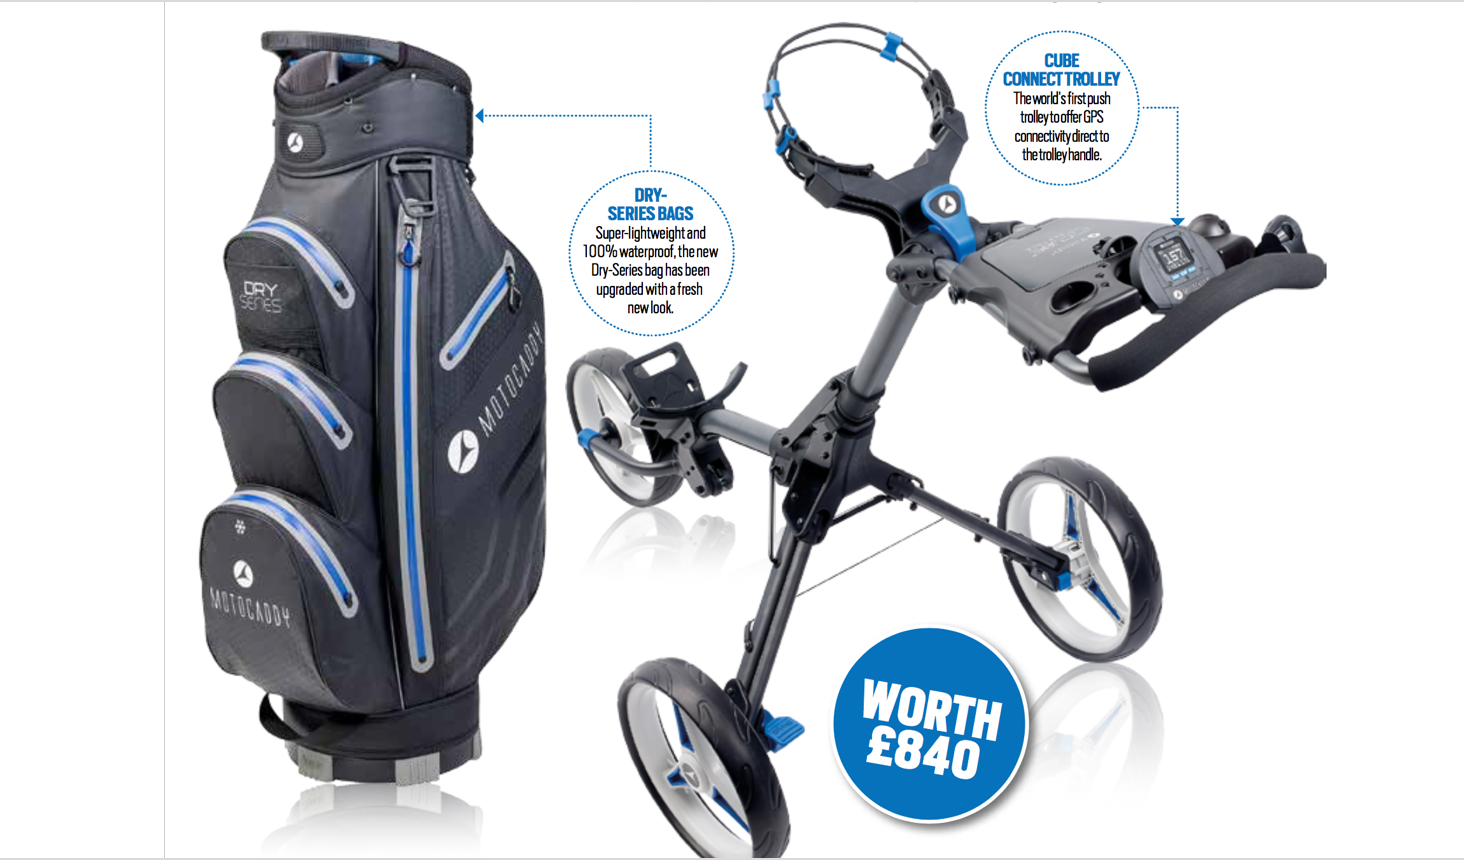 Win a Motocaddy Cube Connect, the world's first GPS push trolley sweepstakes